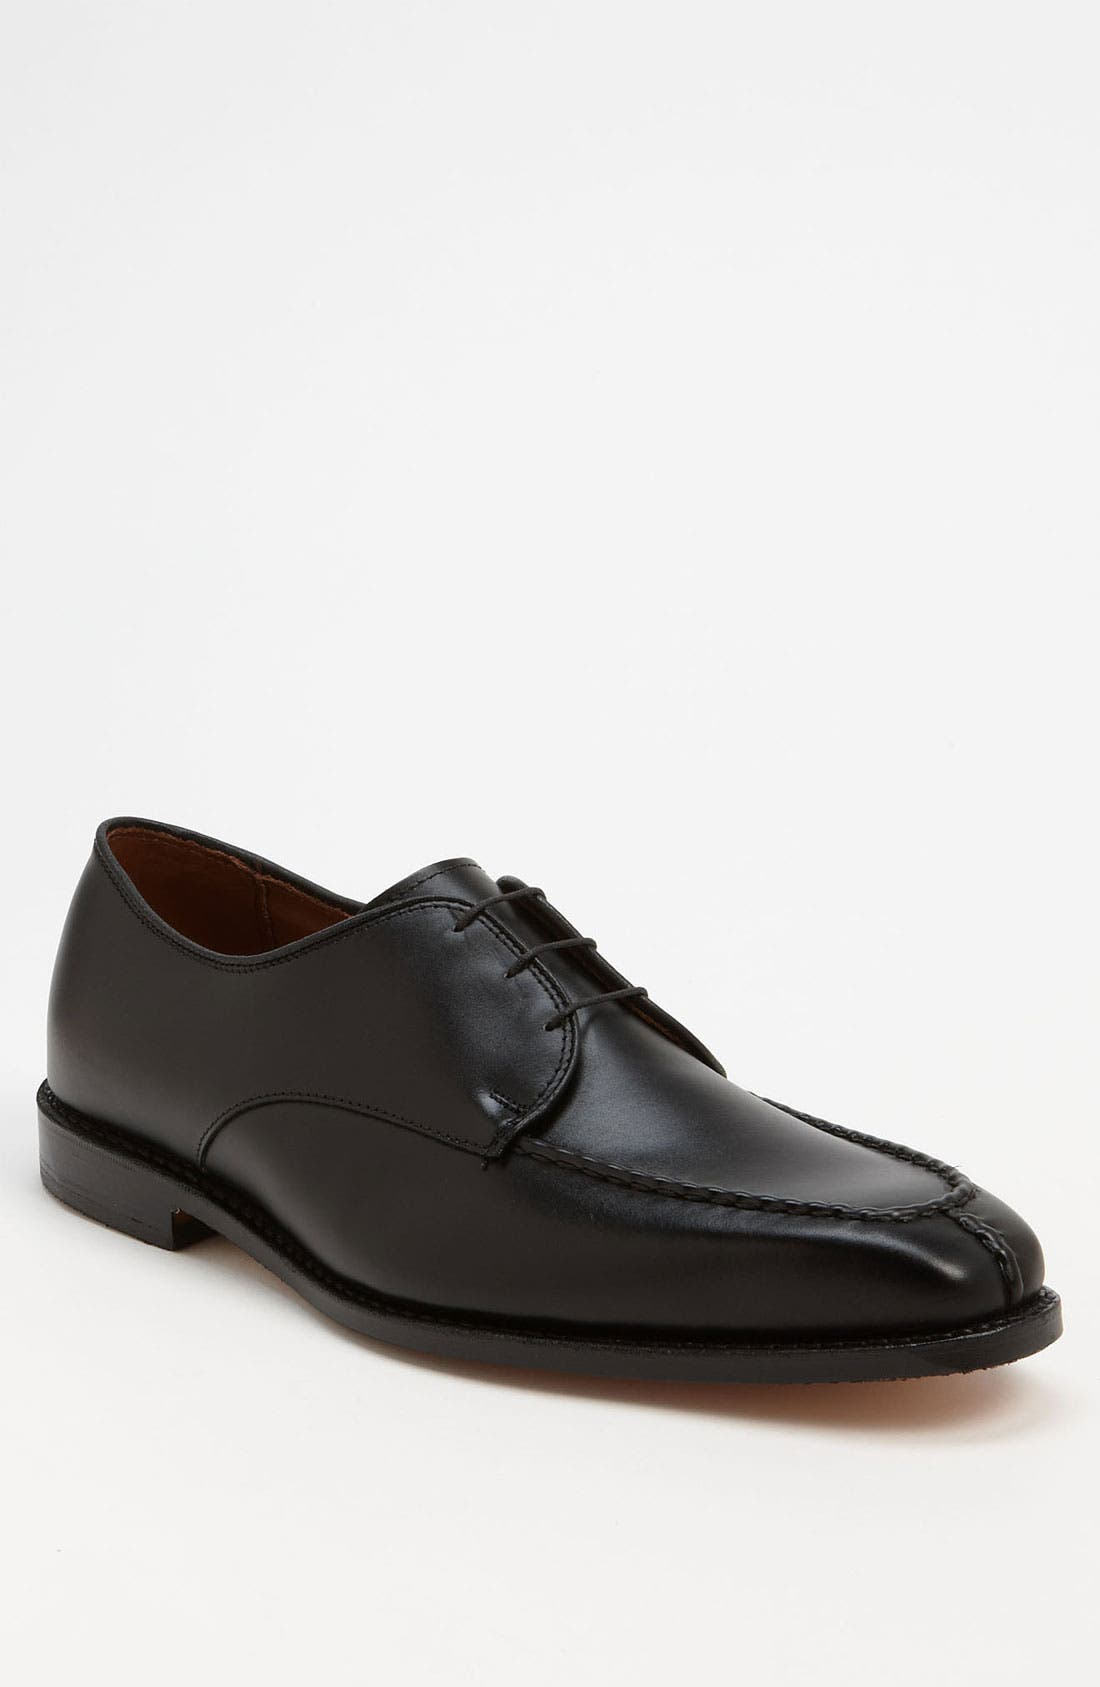 Alternate Image 1 Selected - Allen Edmonds 'Parkway' Oxford (Online Only)